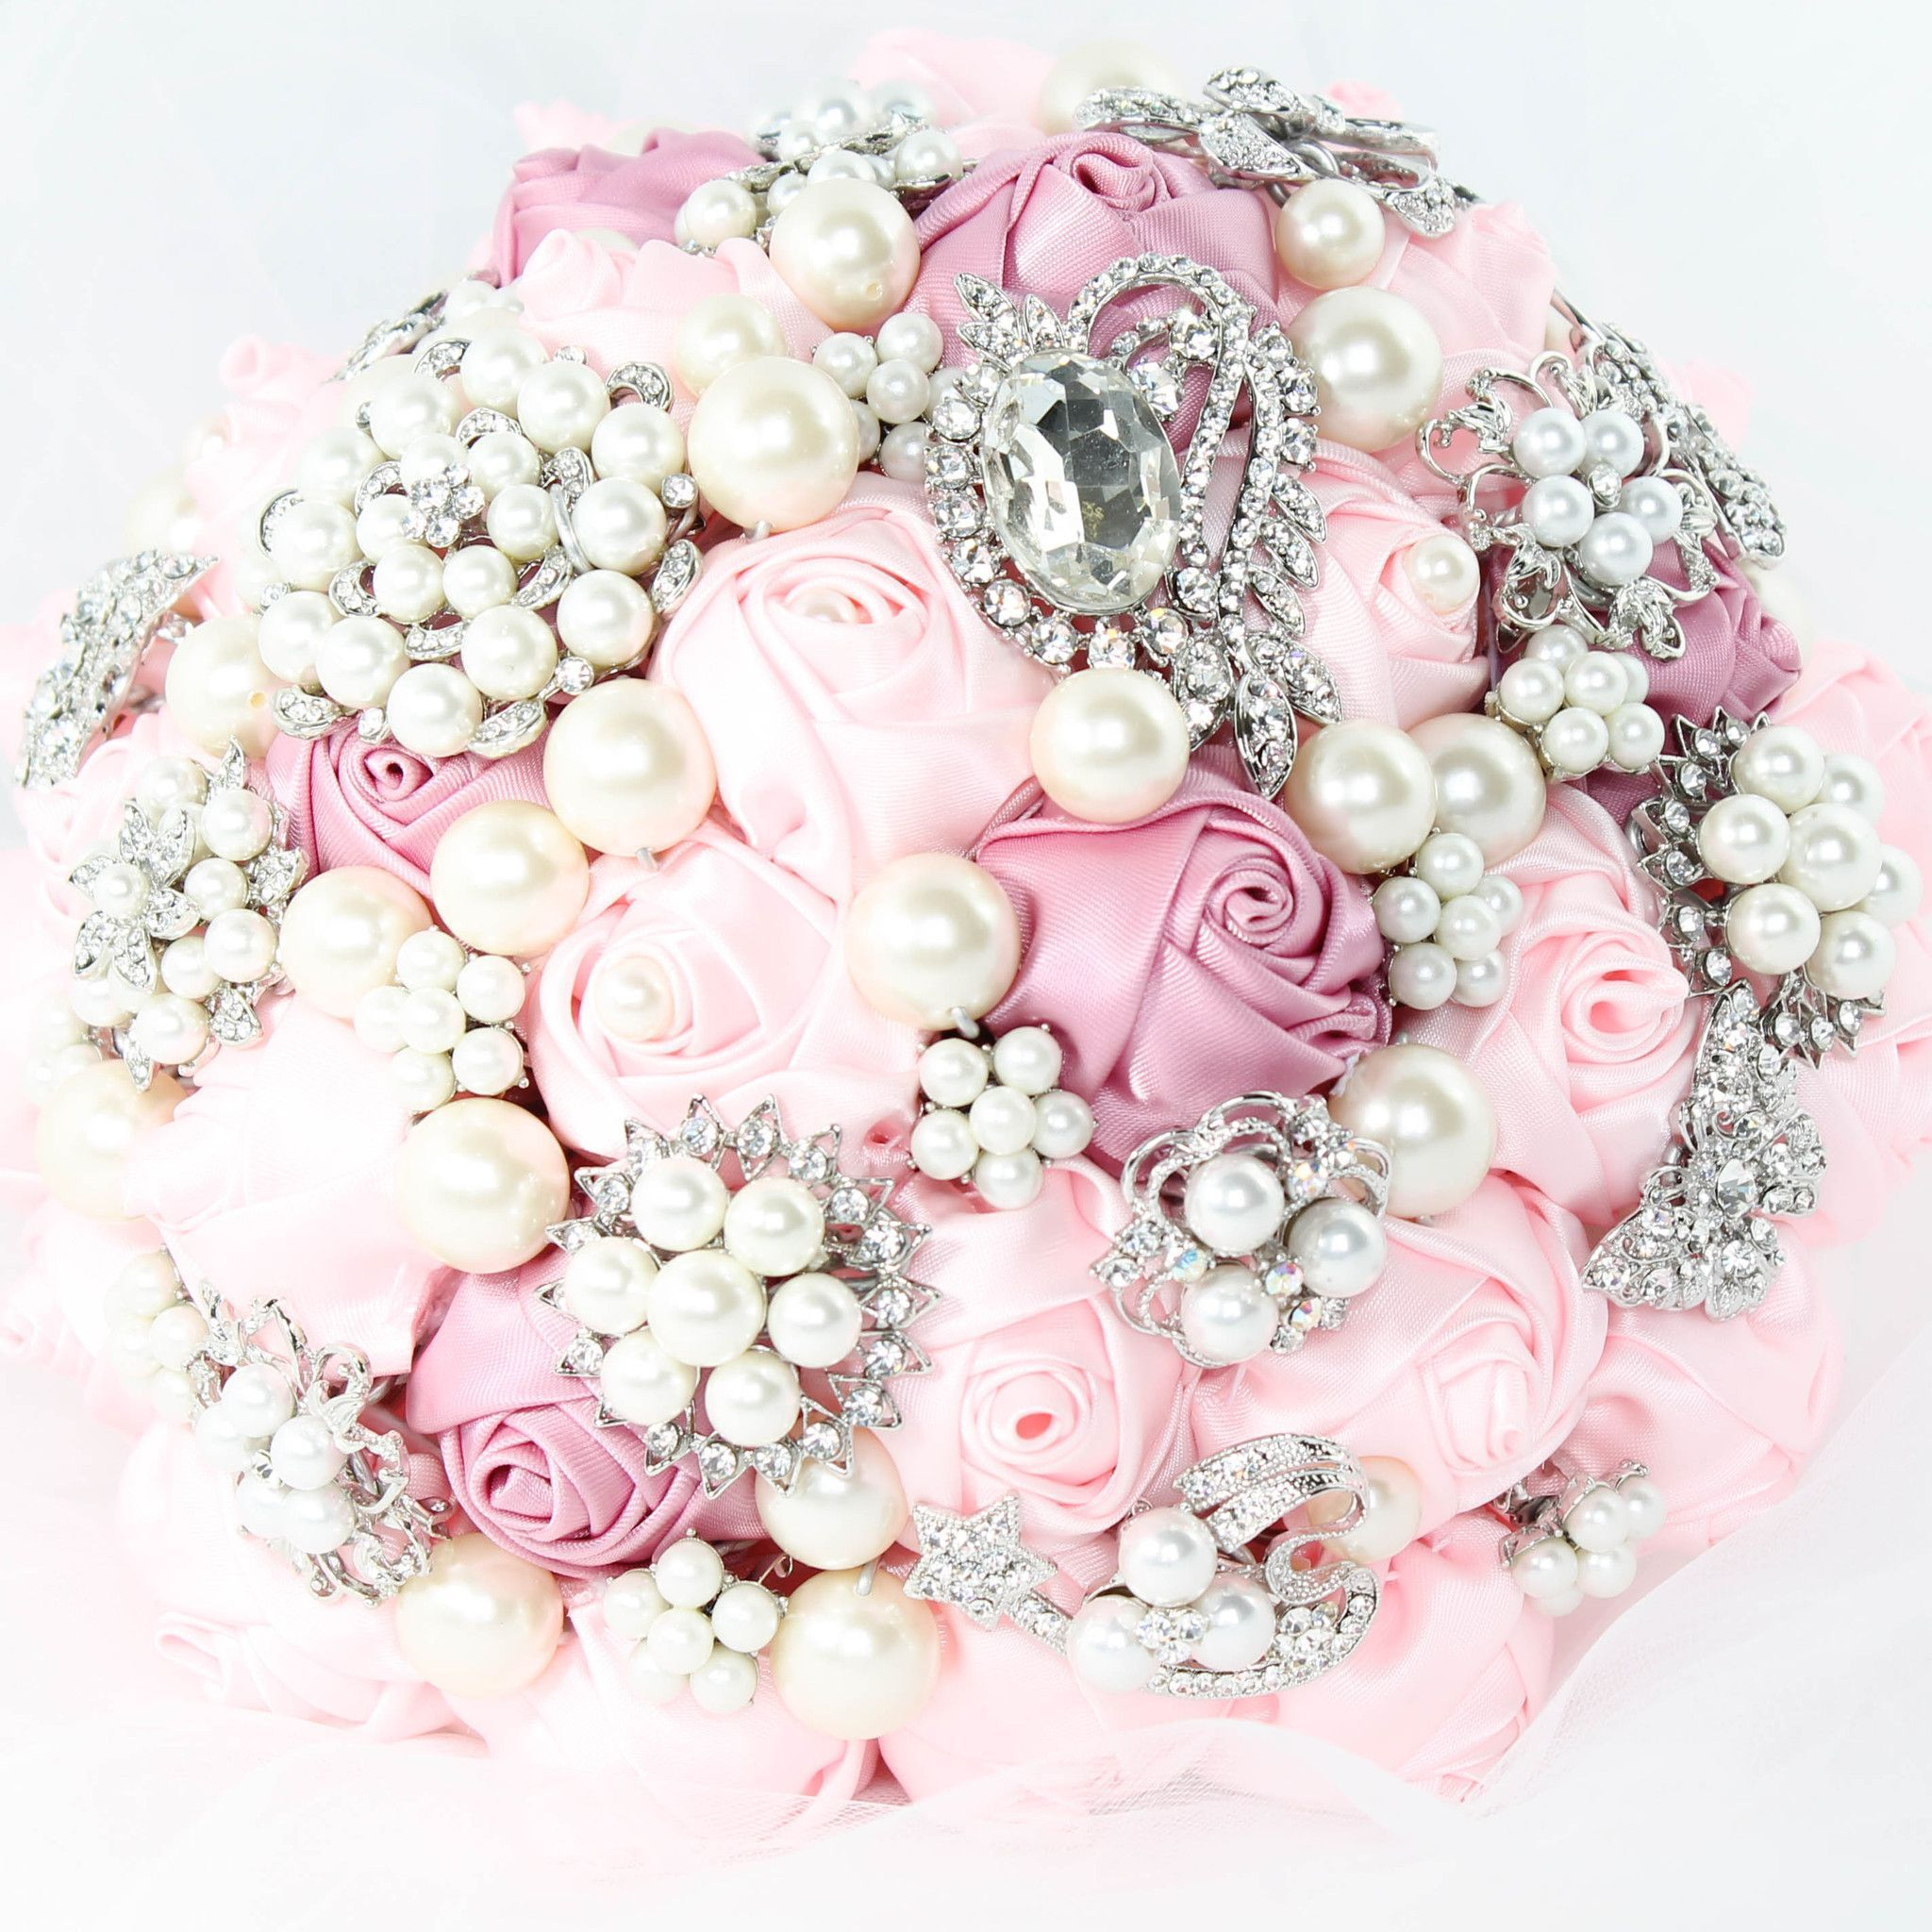 This brooch bouquet is handcrafted with beautiful brooches colorful this brooch bouquet is handcrafted with beautiful brooches colorful satin ribbon flowers in perfect combination izmirmasajfo